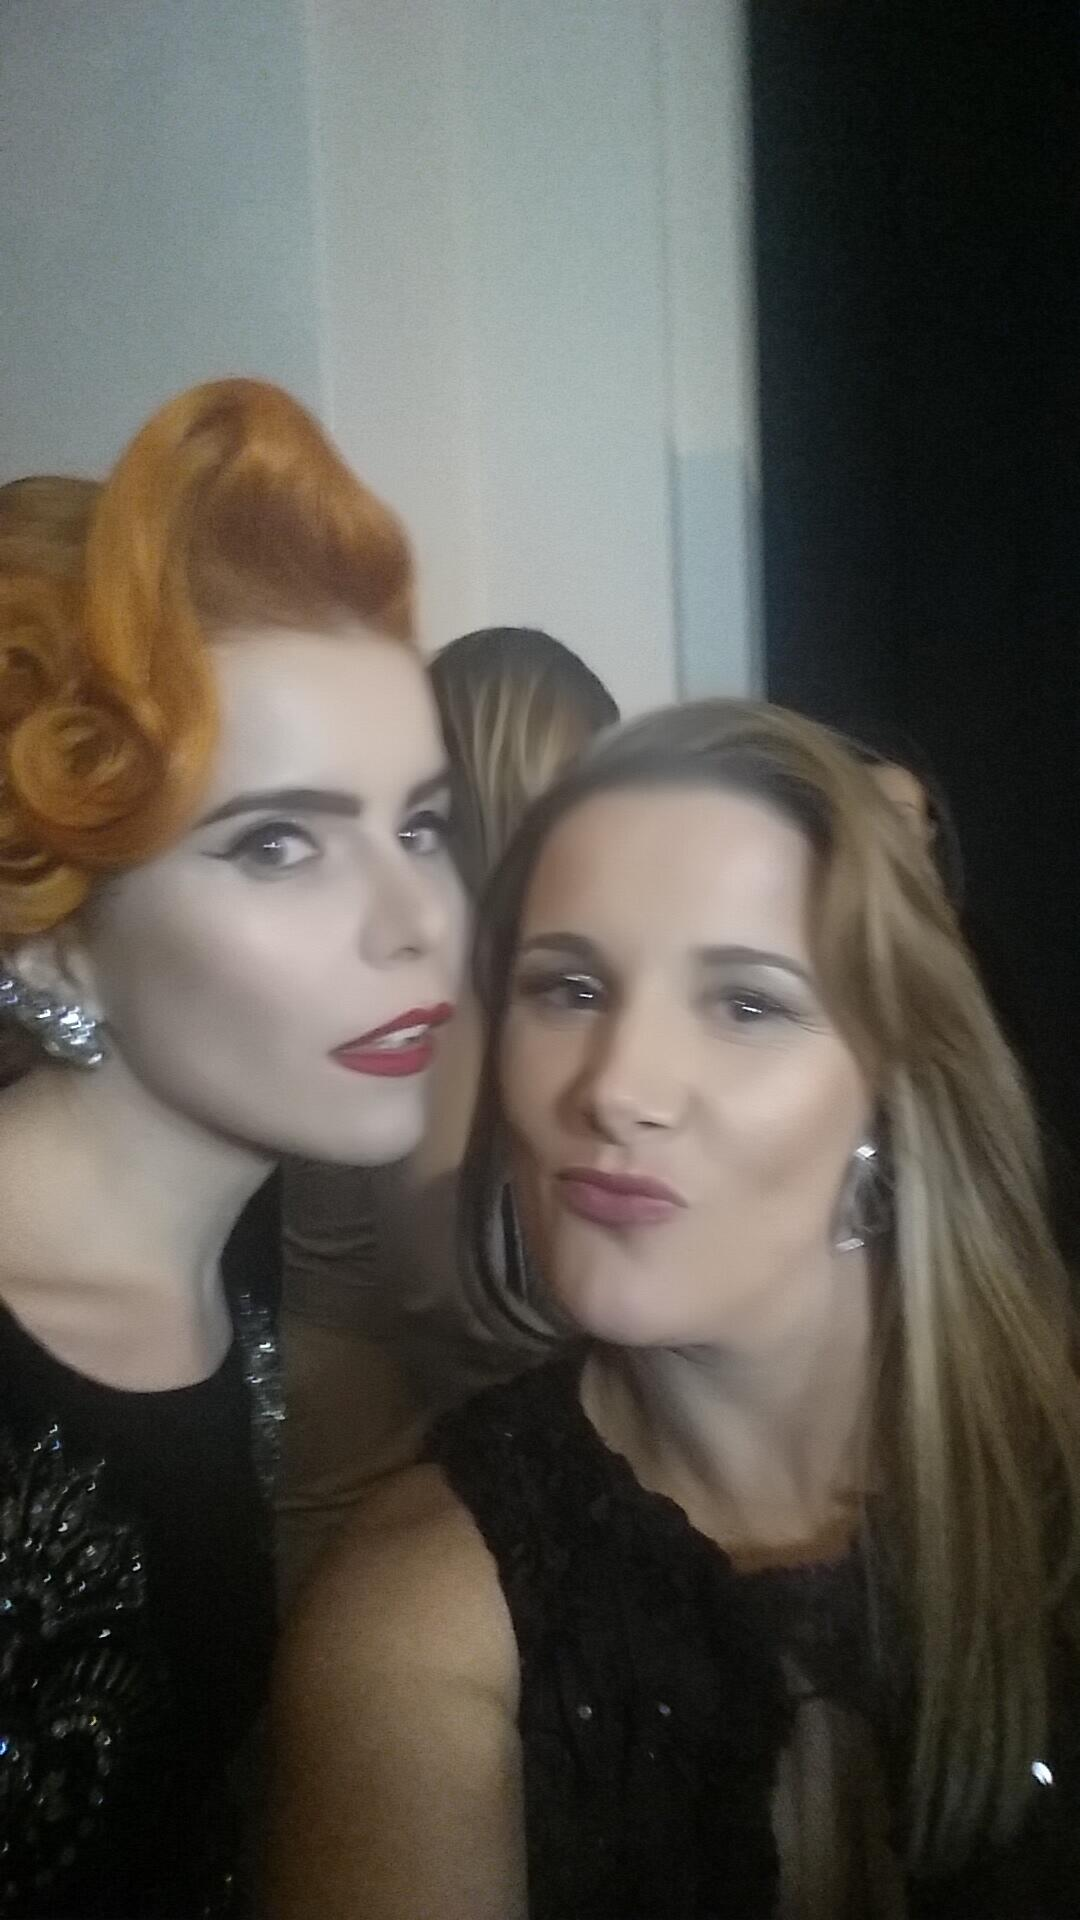 Me and paloma faith x http://t.co/r7bKpBvMYJ